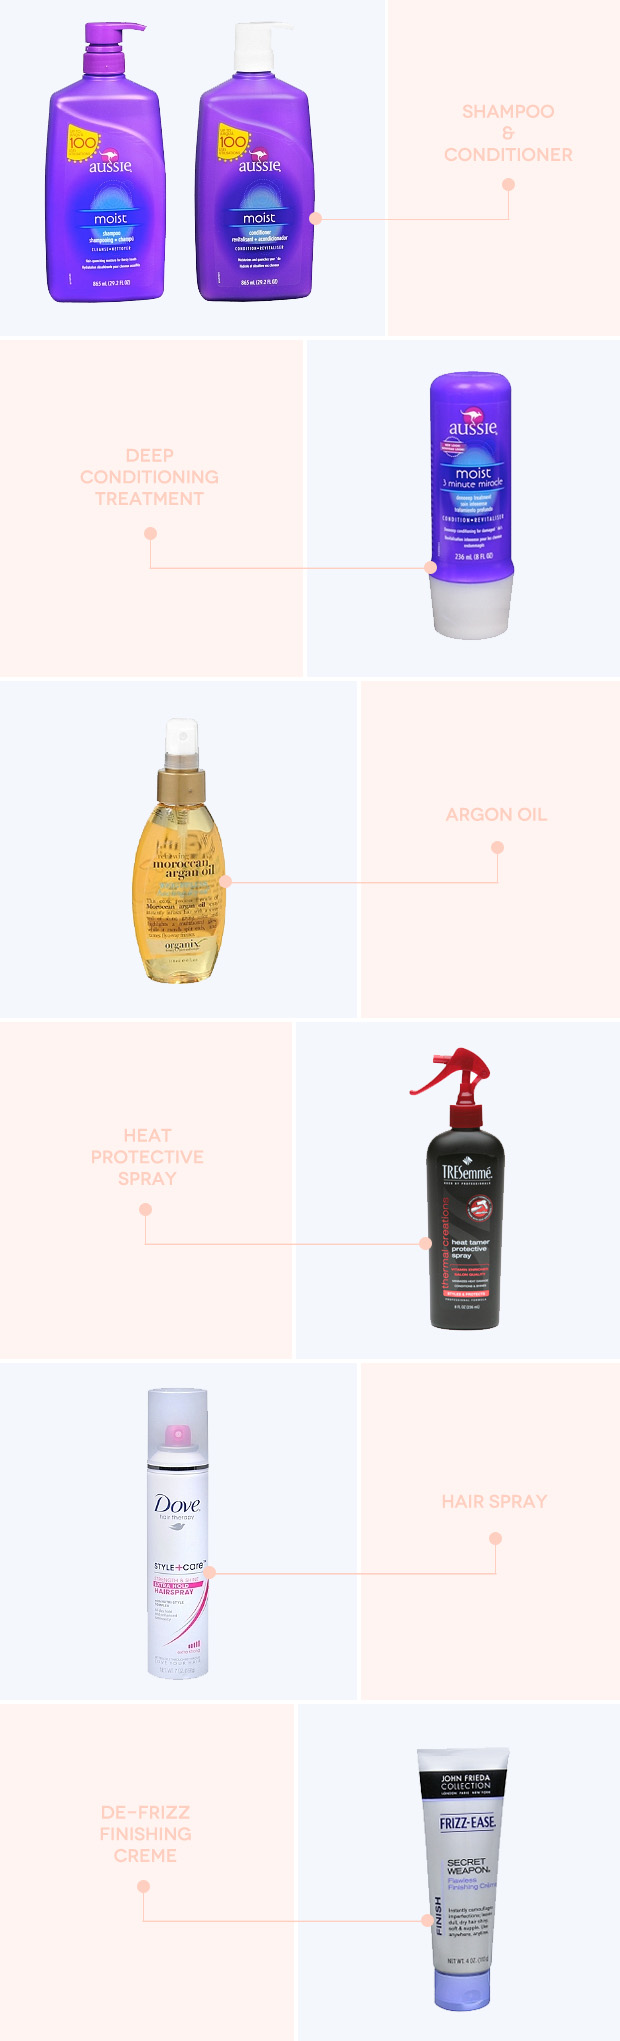 6 Must-Have Drugstore Hair Products